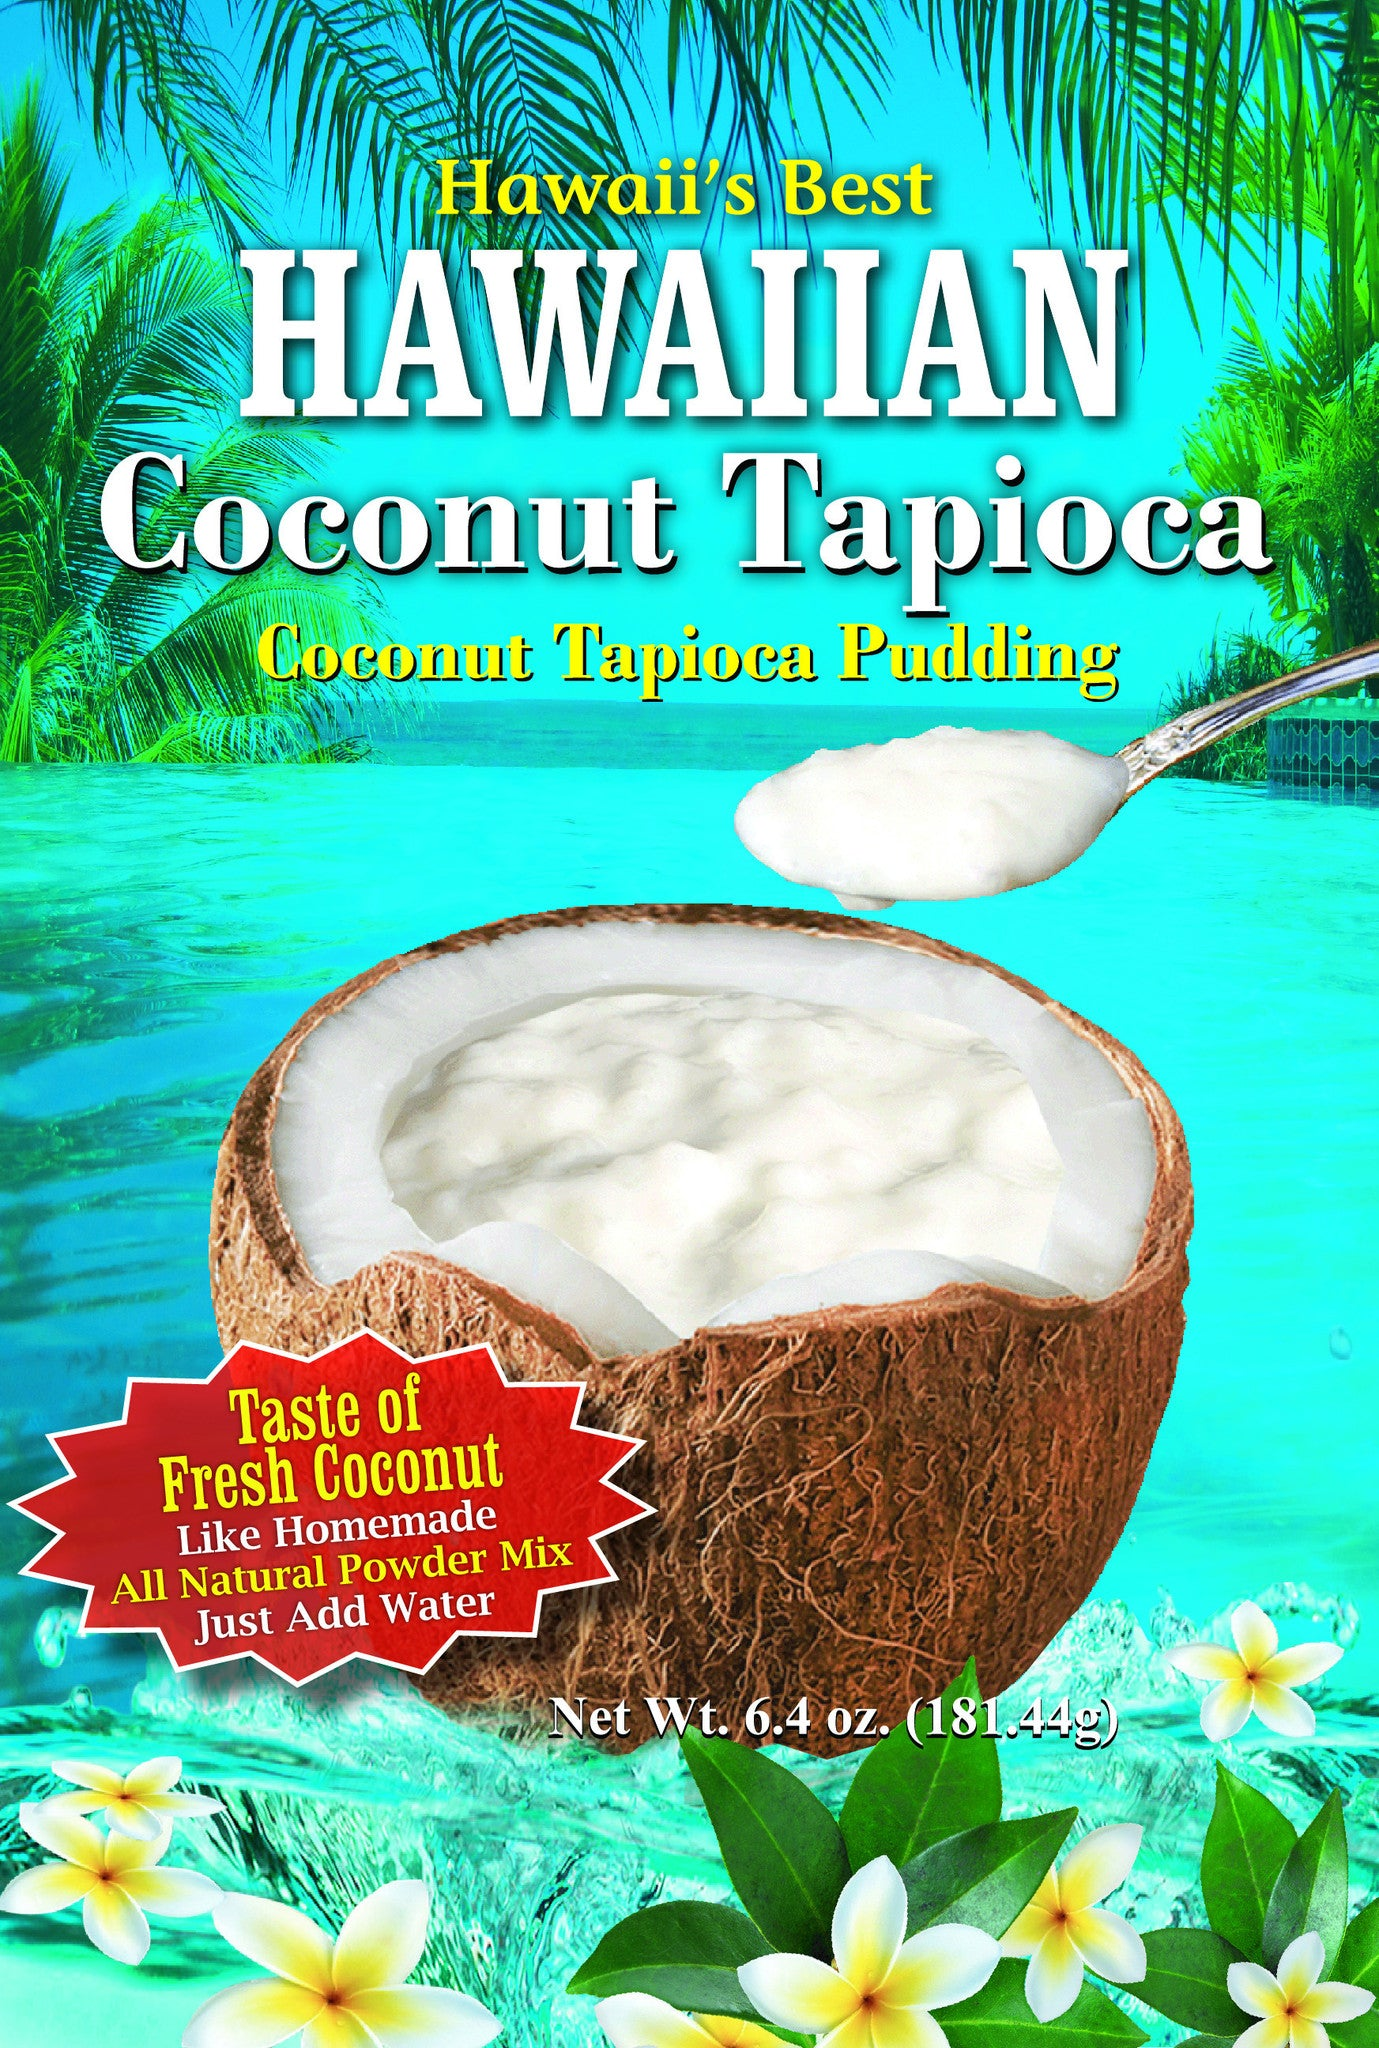 (1 BAG) COCONUT TAPIOCA MIX, Gluten Free, Kraft Minute Tapioca already inside, Just add water!